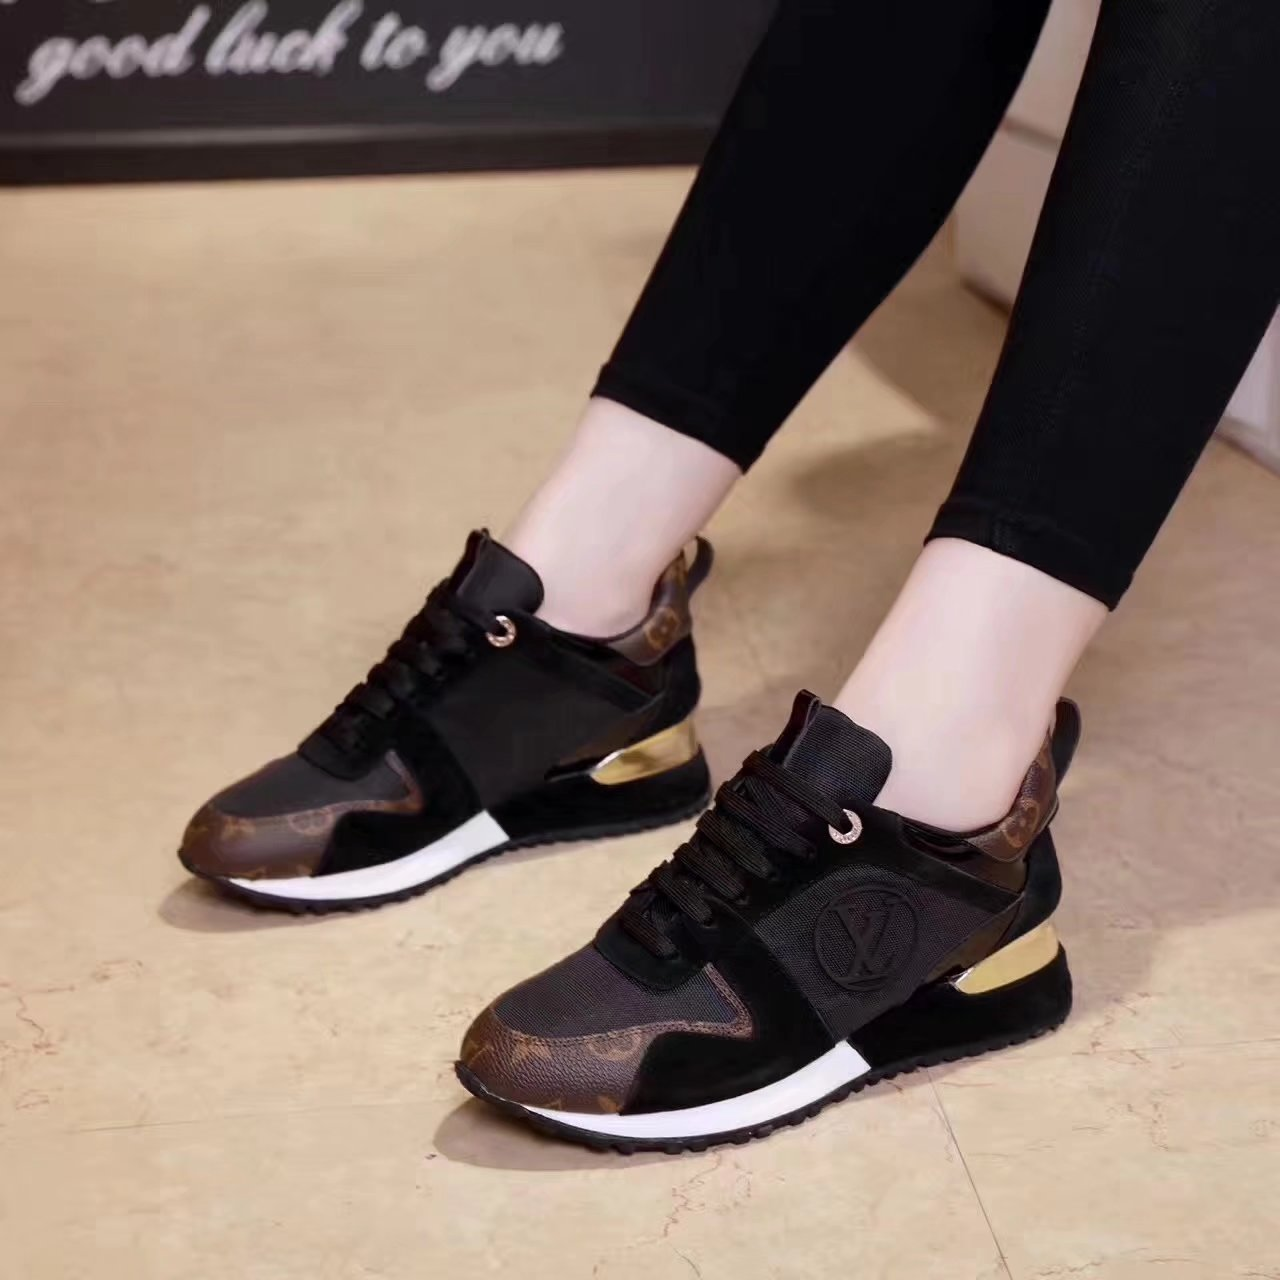 107.44, Louis vuitton shoes women - page2,louis vuitton new pattern women  leisure sports shoes comfortable d8a3712e481